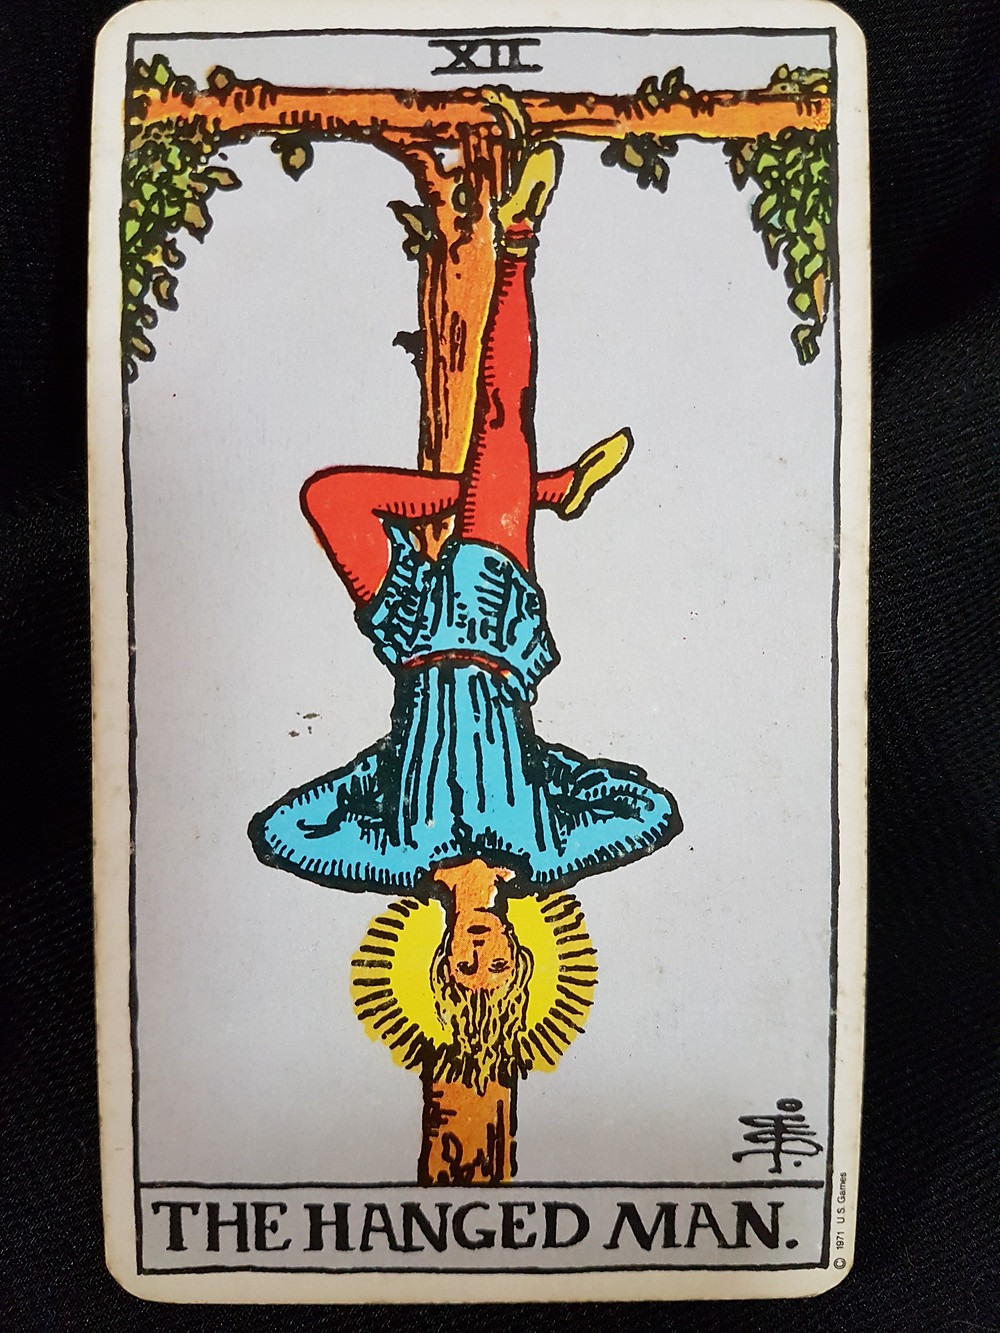 The Hanged Man XII lynsreadings.com